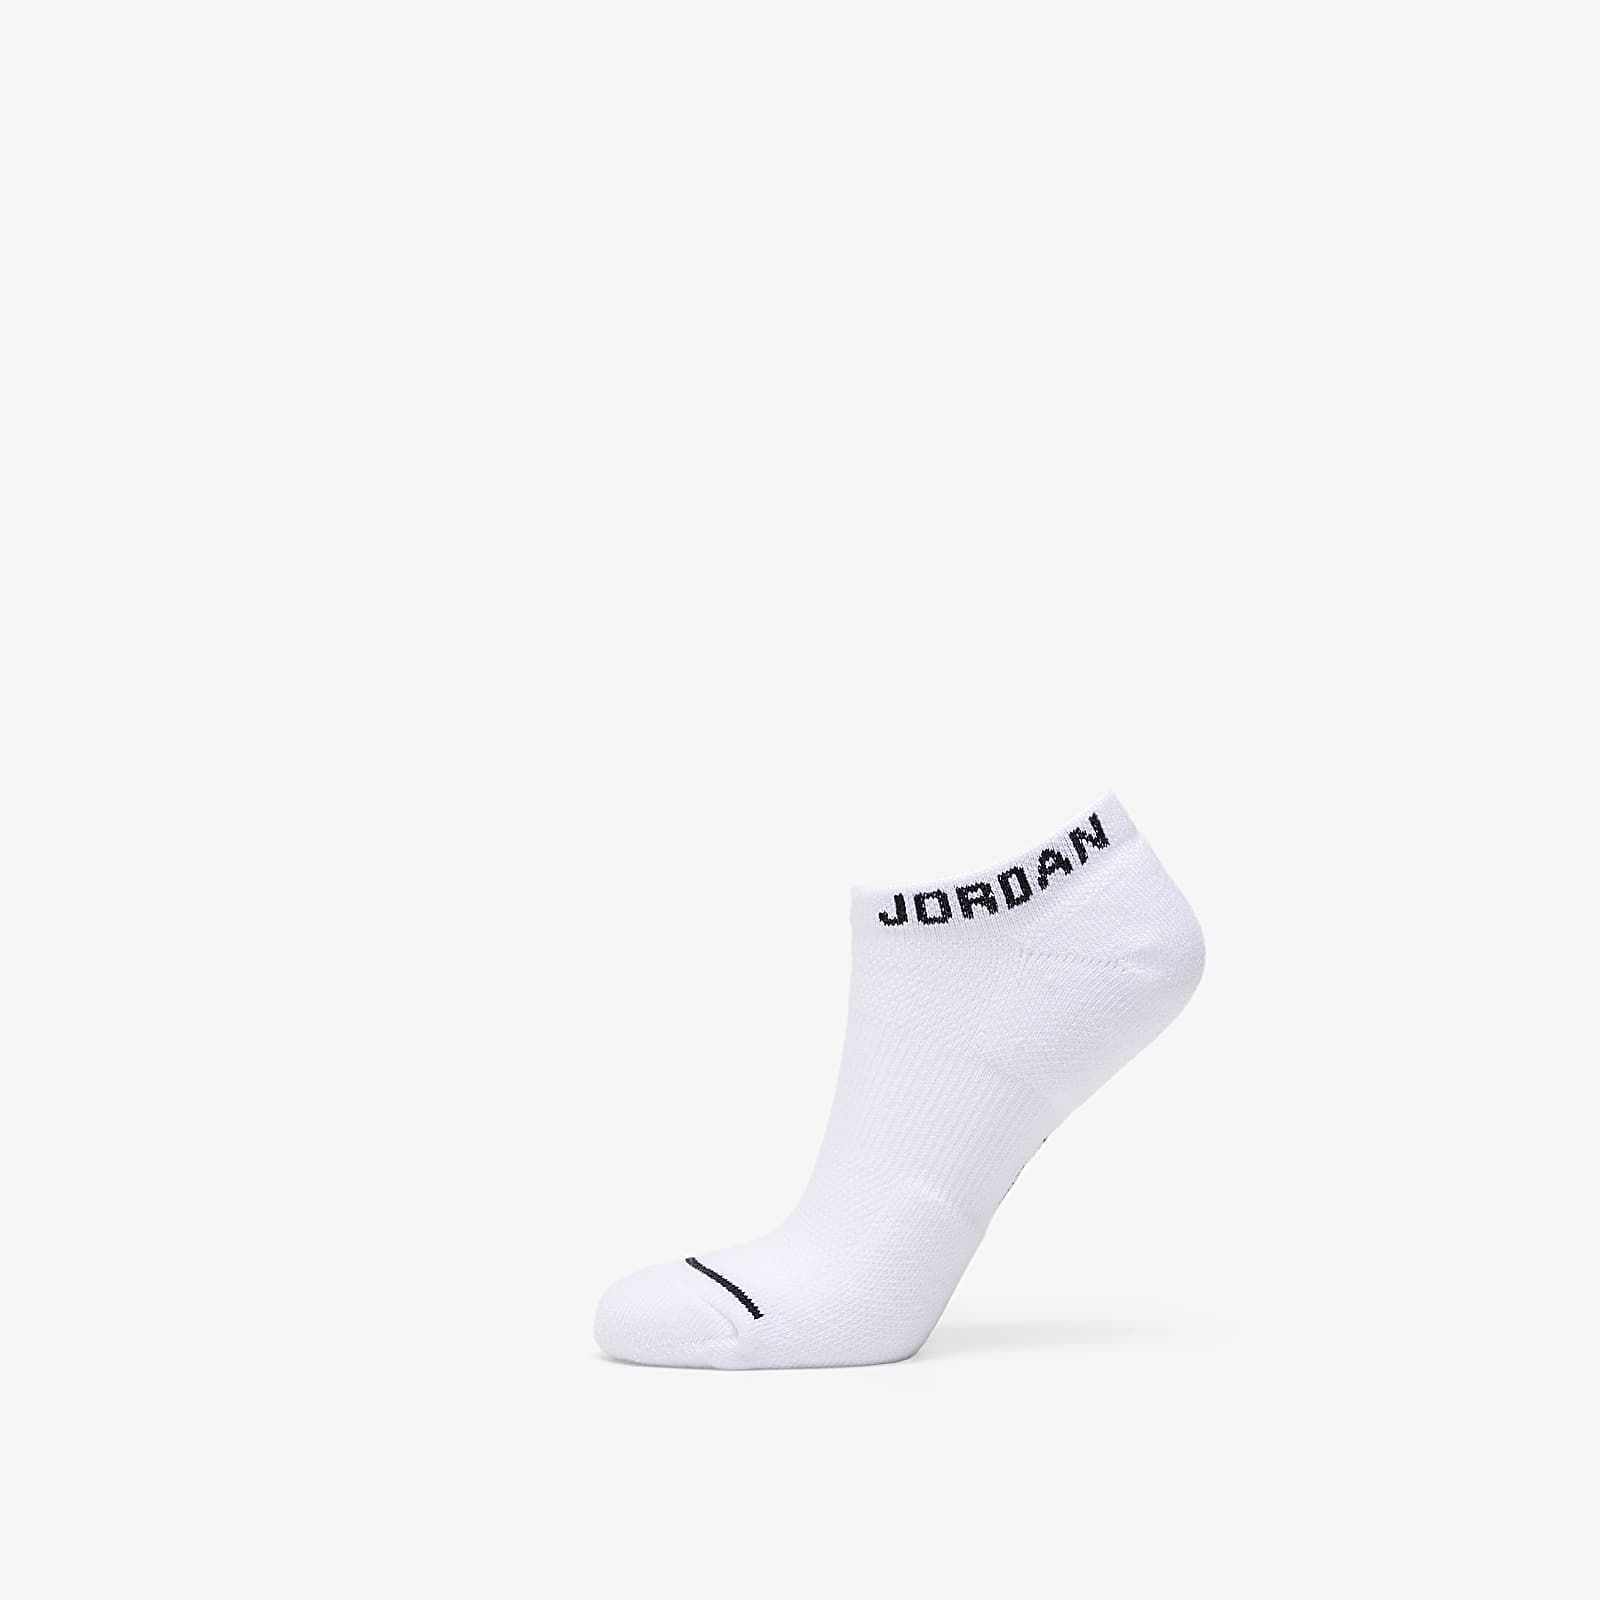 Skarpetki Jordan Everyday Max No Show 3 Pair Socks White/ White/ White/ Black